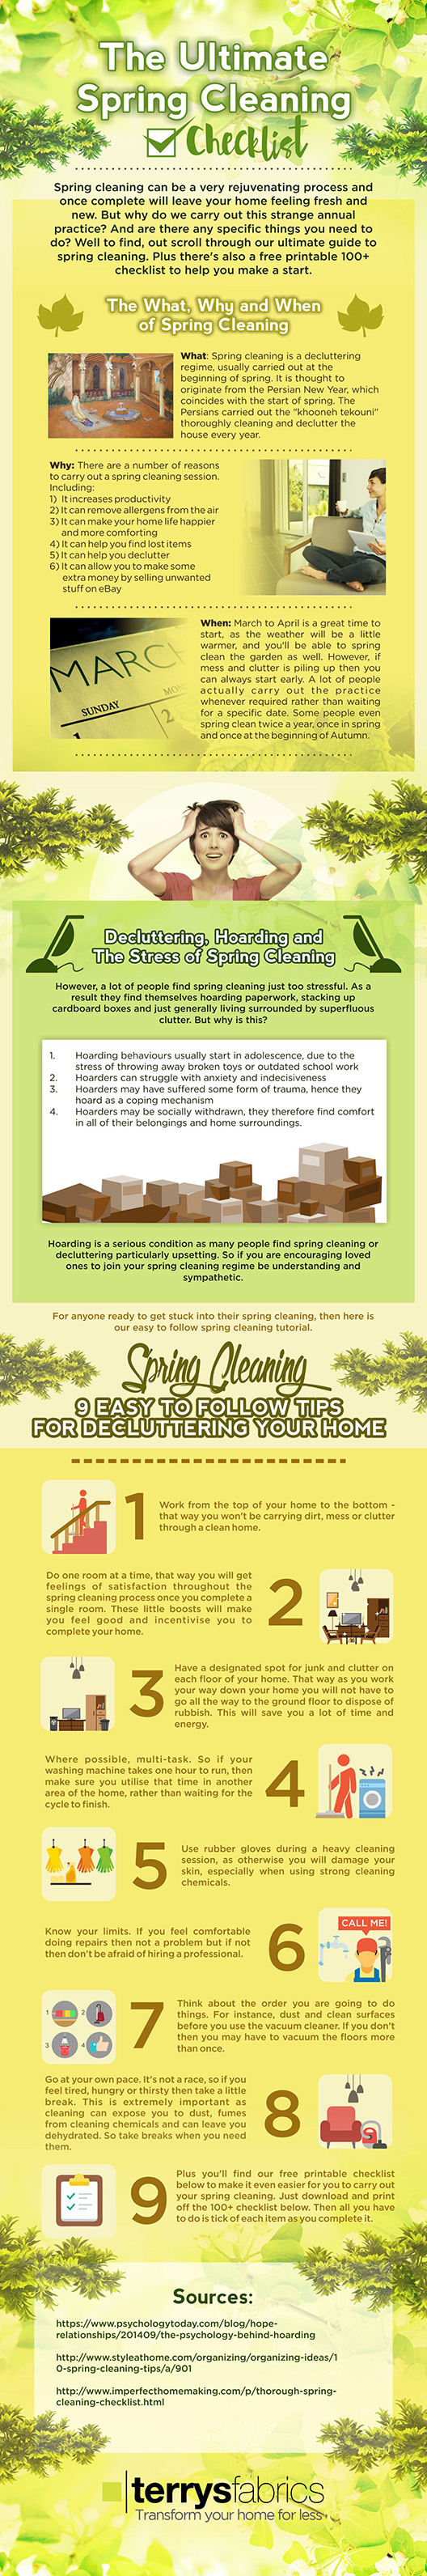 spring cleaning, infographic, spring cleaning infographic, home cleaning, home spring cleaning, DIY, DIY cleaning, decluttering, hoarding, decluttering tips